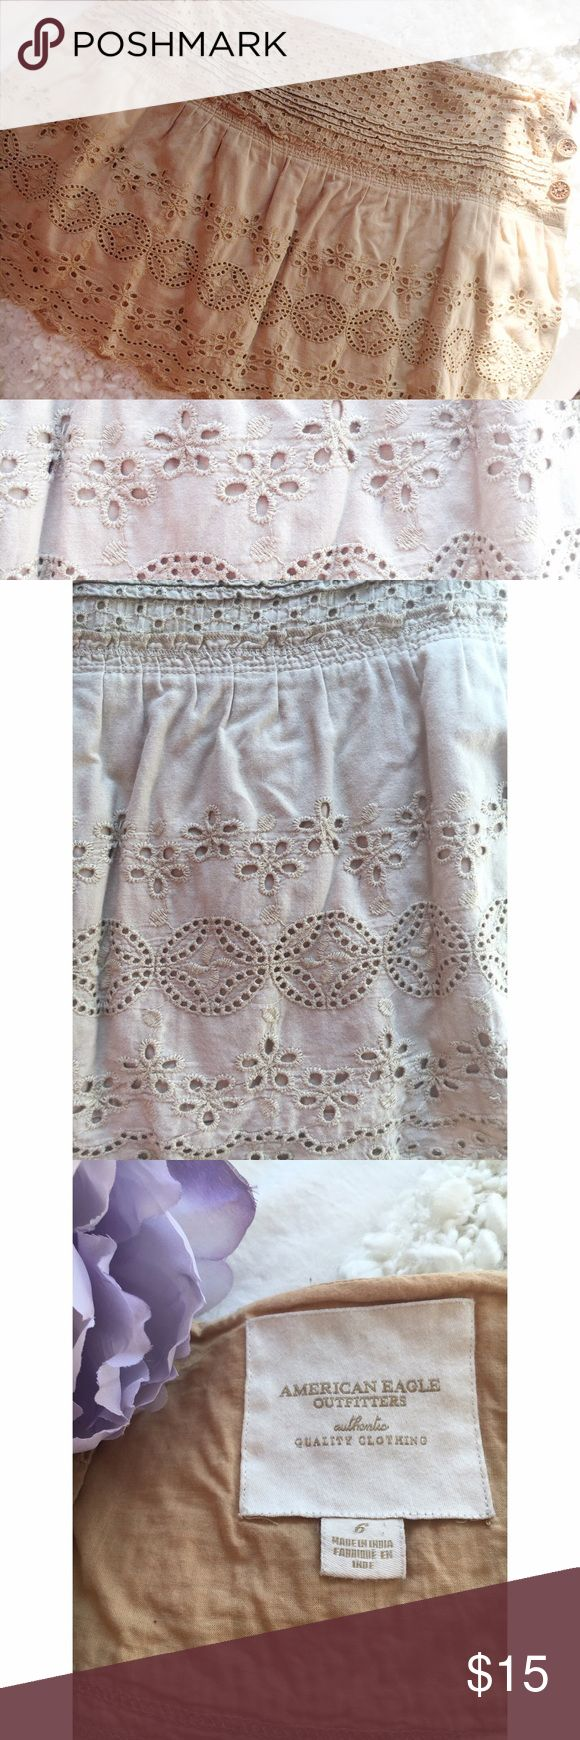 """American Eagle Beautiful Skirt * American Eagle Beautiful Skirt * Length: Approx 15"""" * Waist: Approx 17.5"""" when the skirt is laid flat.  * In great condition, worn very few times. * Accepting offers, via the offer option only. American Eagle Outfitters Skirts Mini"""